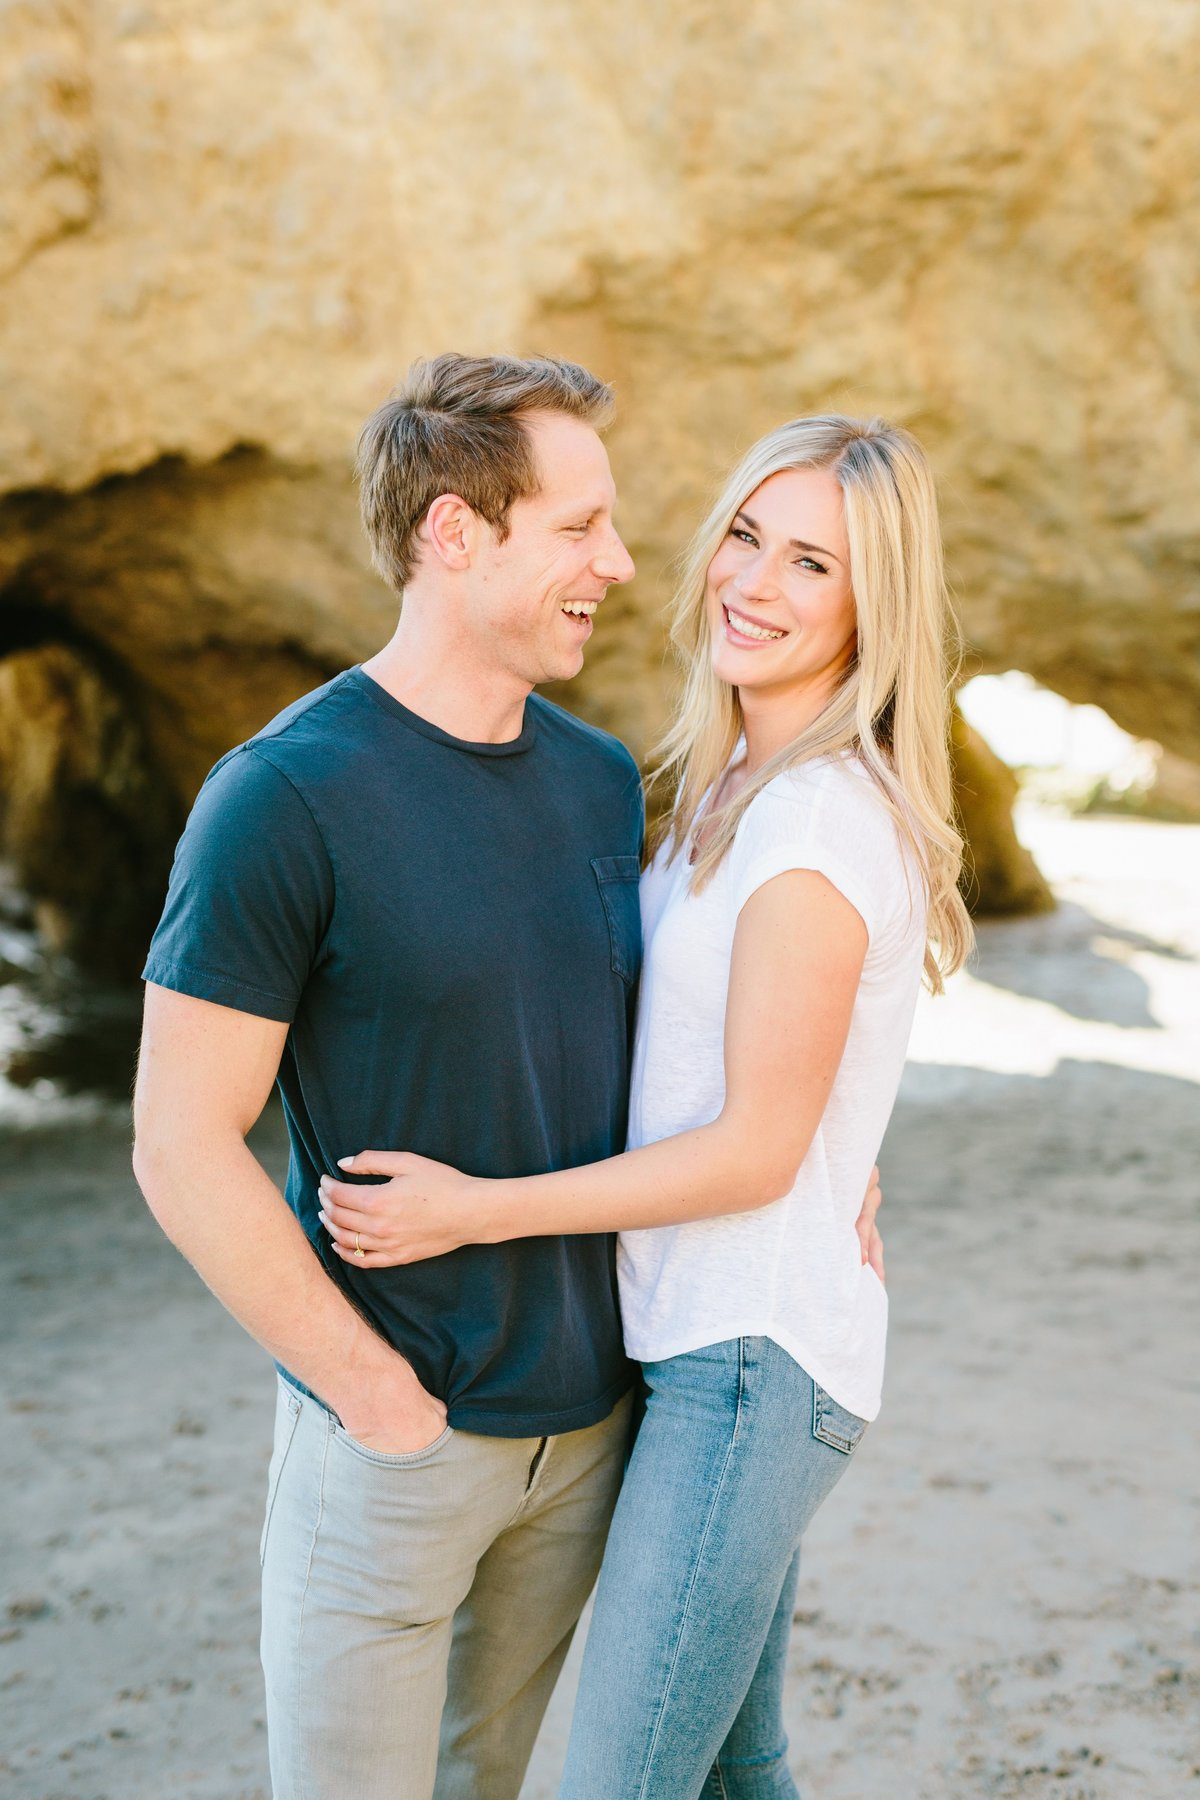 Best California Engagement Photographer-Jodee Debes Photography-231